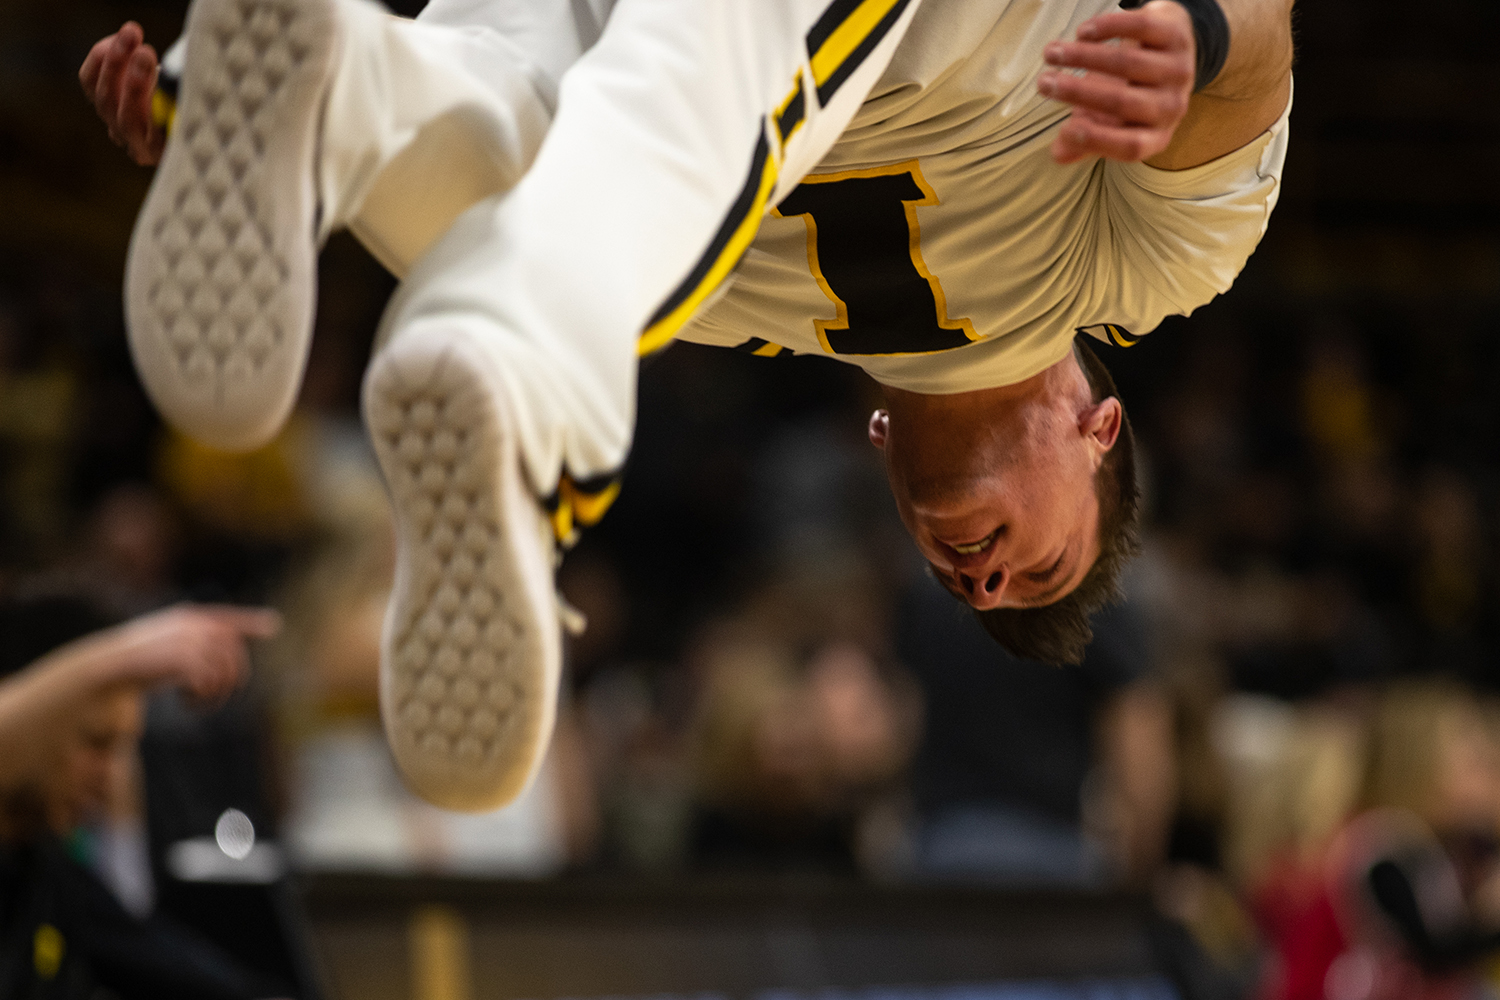 A+spirit+squad+individual+performs+a+flip+during+the+men%27s+basketball+game+against+Savannah+State+at+Carver-Hawkeye+Arena+on+Tuesday%2C+December+22%2C+2018.+The+Hawkeyes+defeated+the+Tigers+110-64.